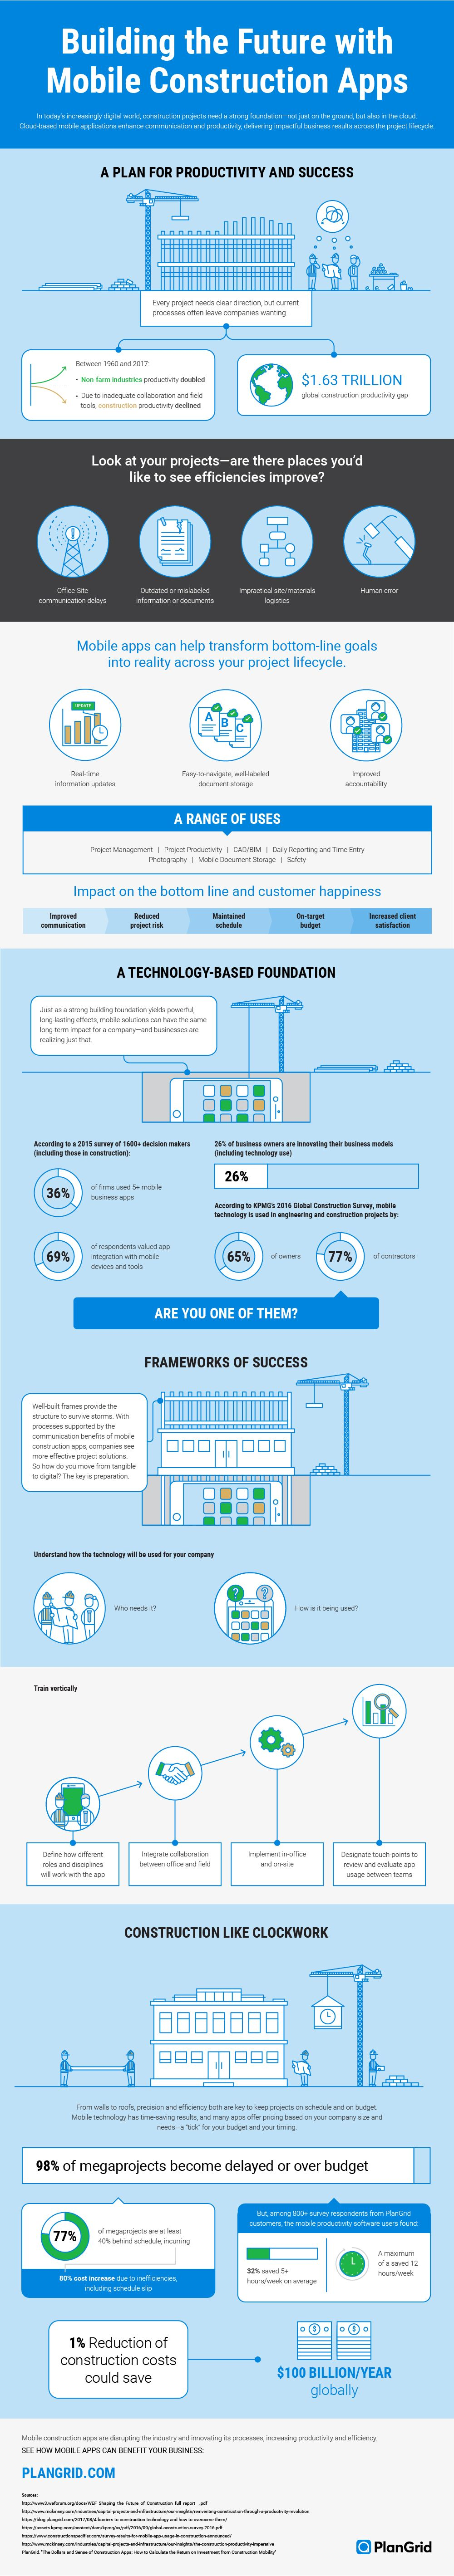 building the future with mobile construction apps infographic